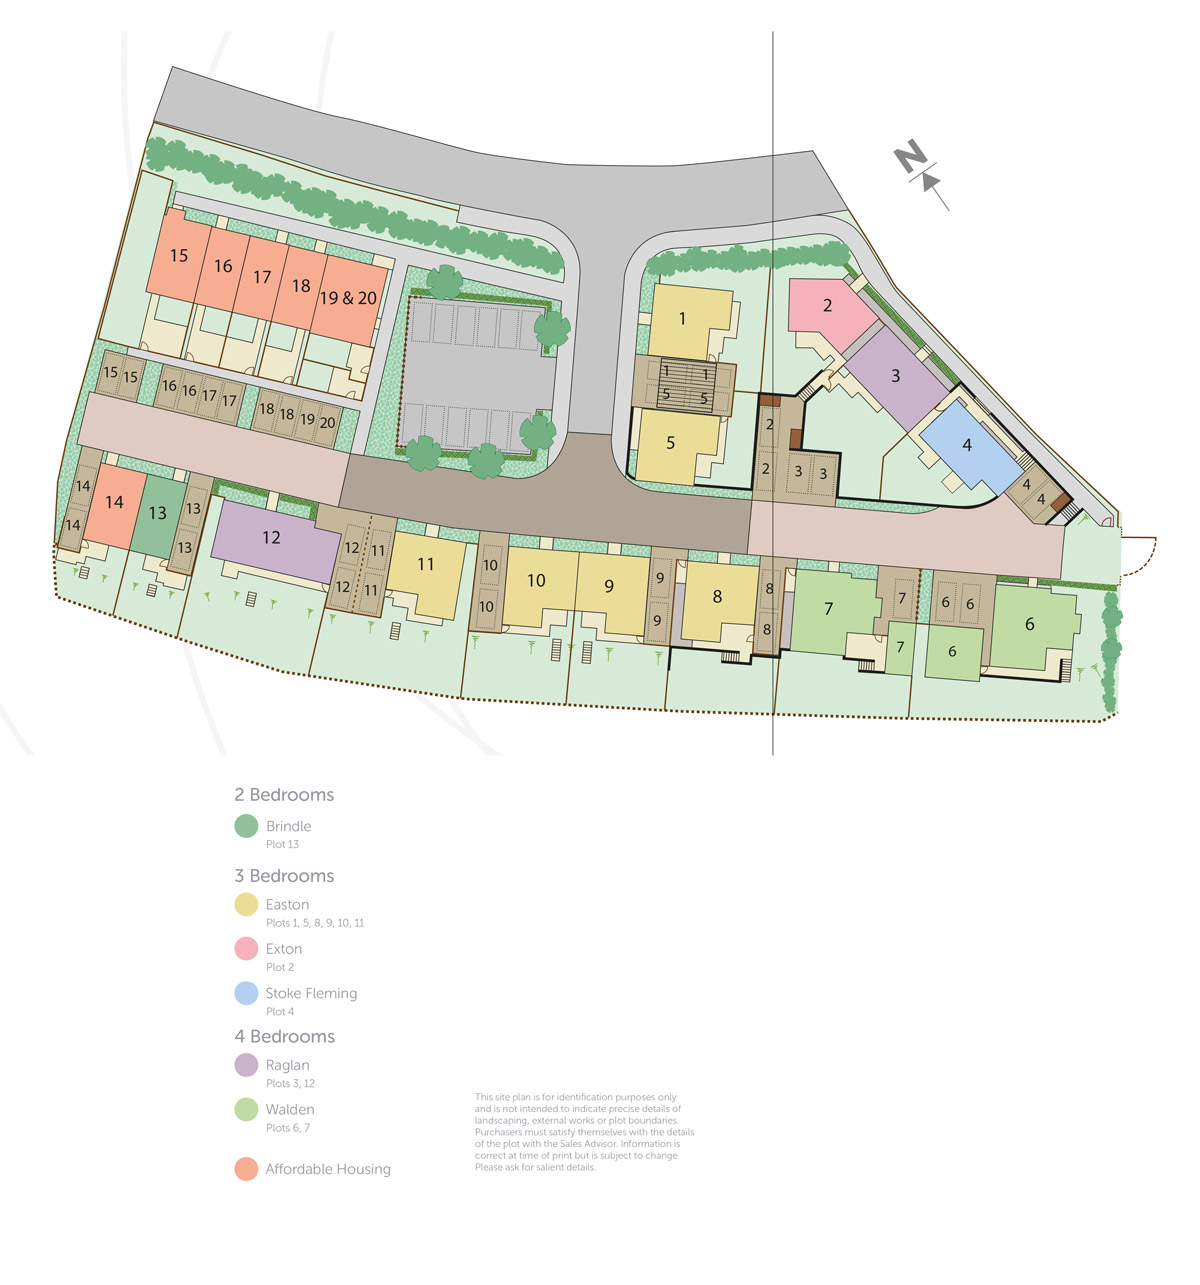 Meadow Haze New Homes Development - Site Layout